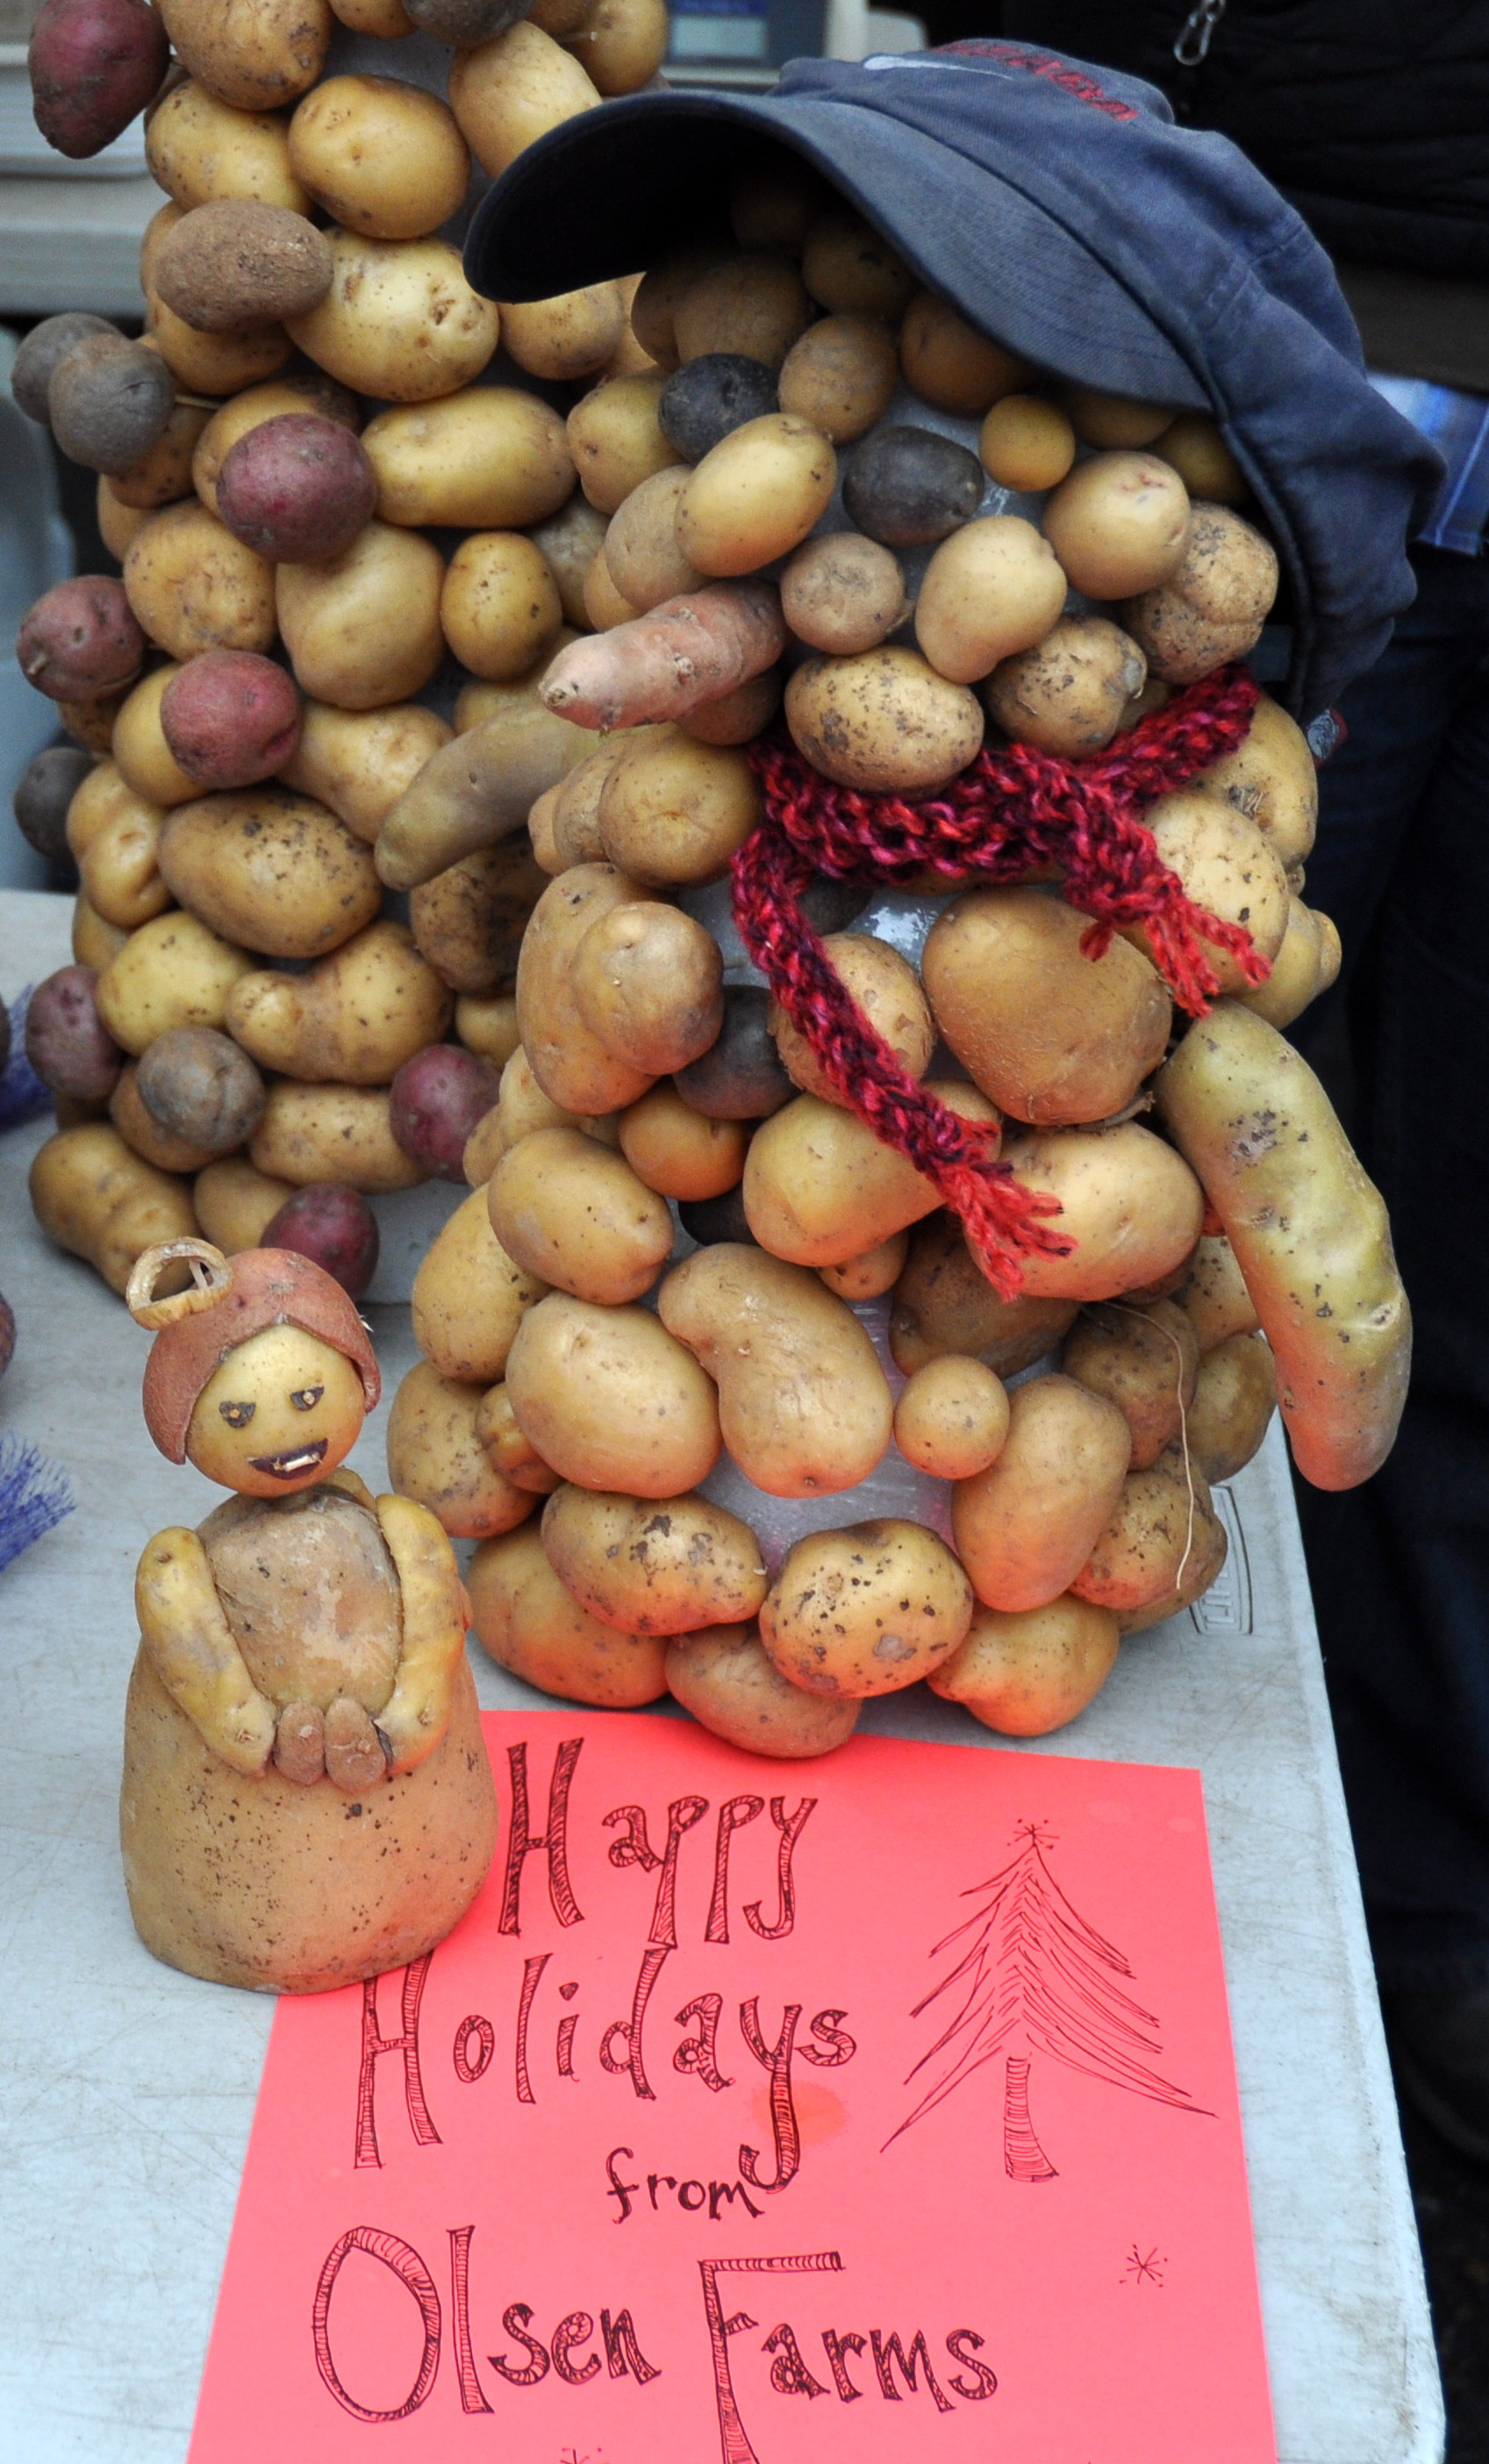 Holiday decoration made from potatoes at Olsen Farms. Photo copyright 2013 by Zachary D. Lyons.